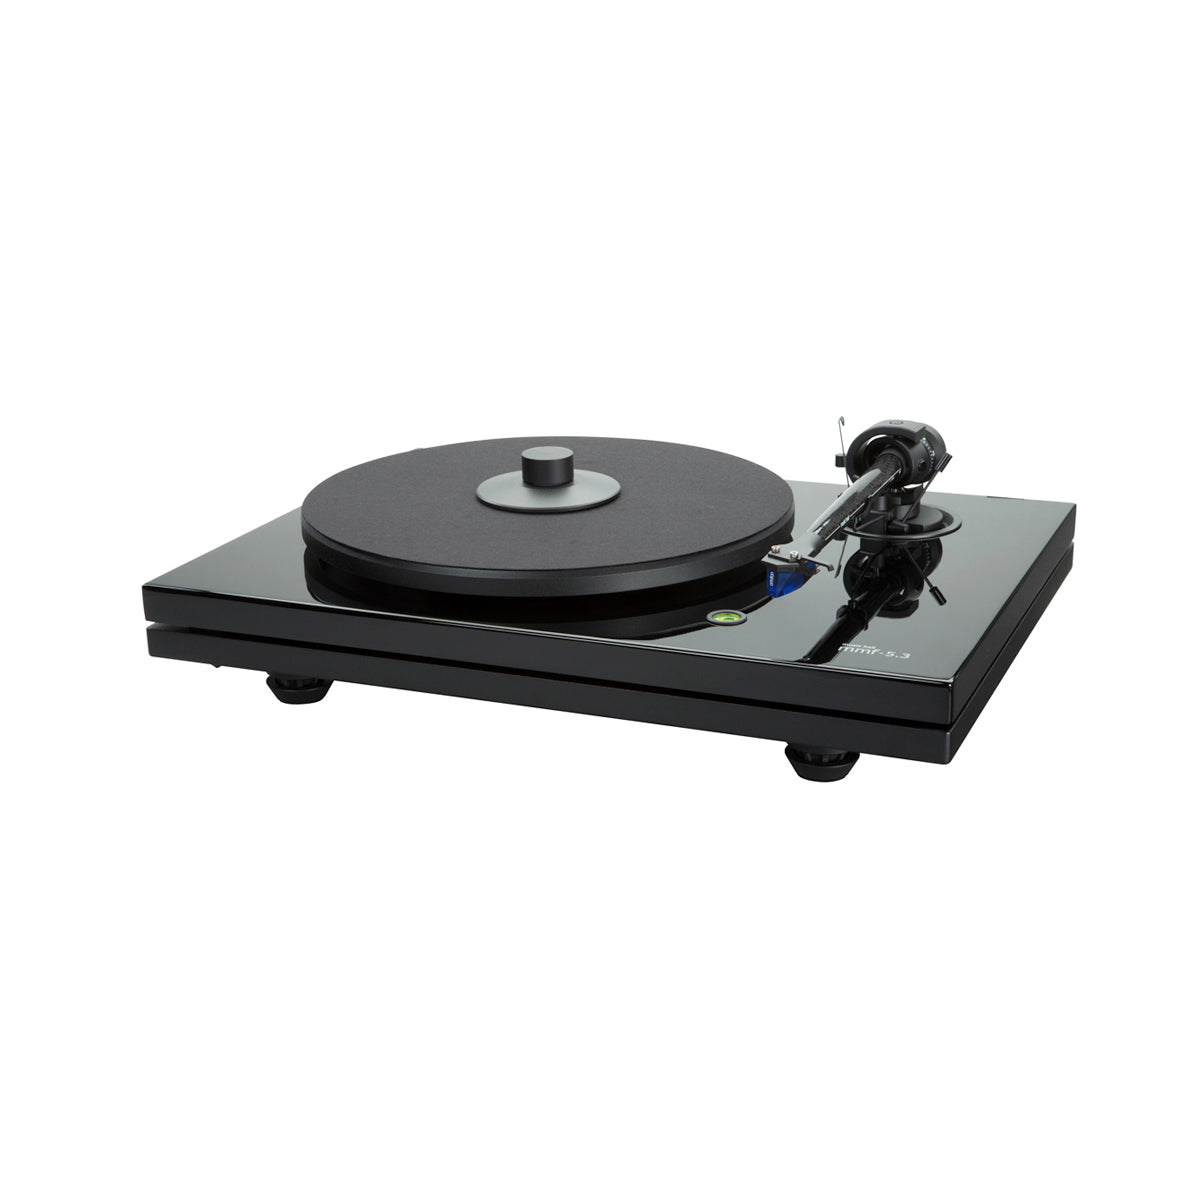 Turntable mmf-5.3 with Cover and Cartridge